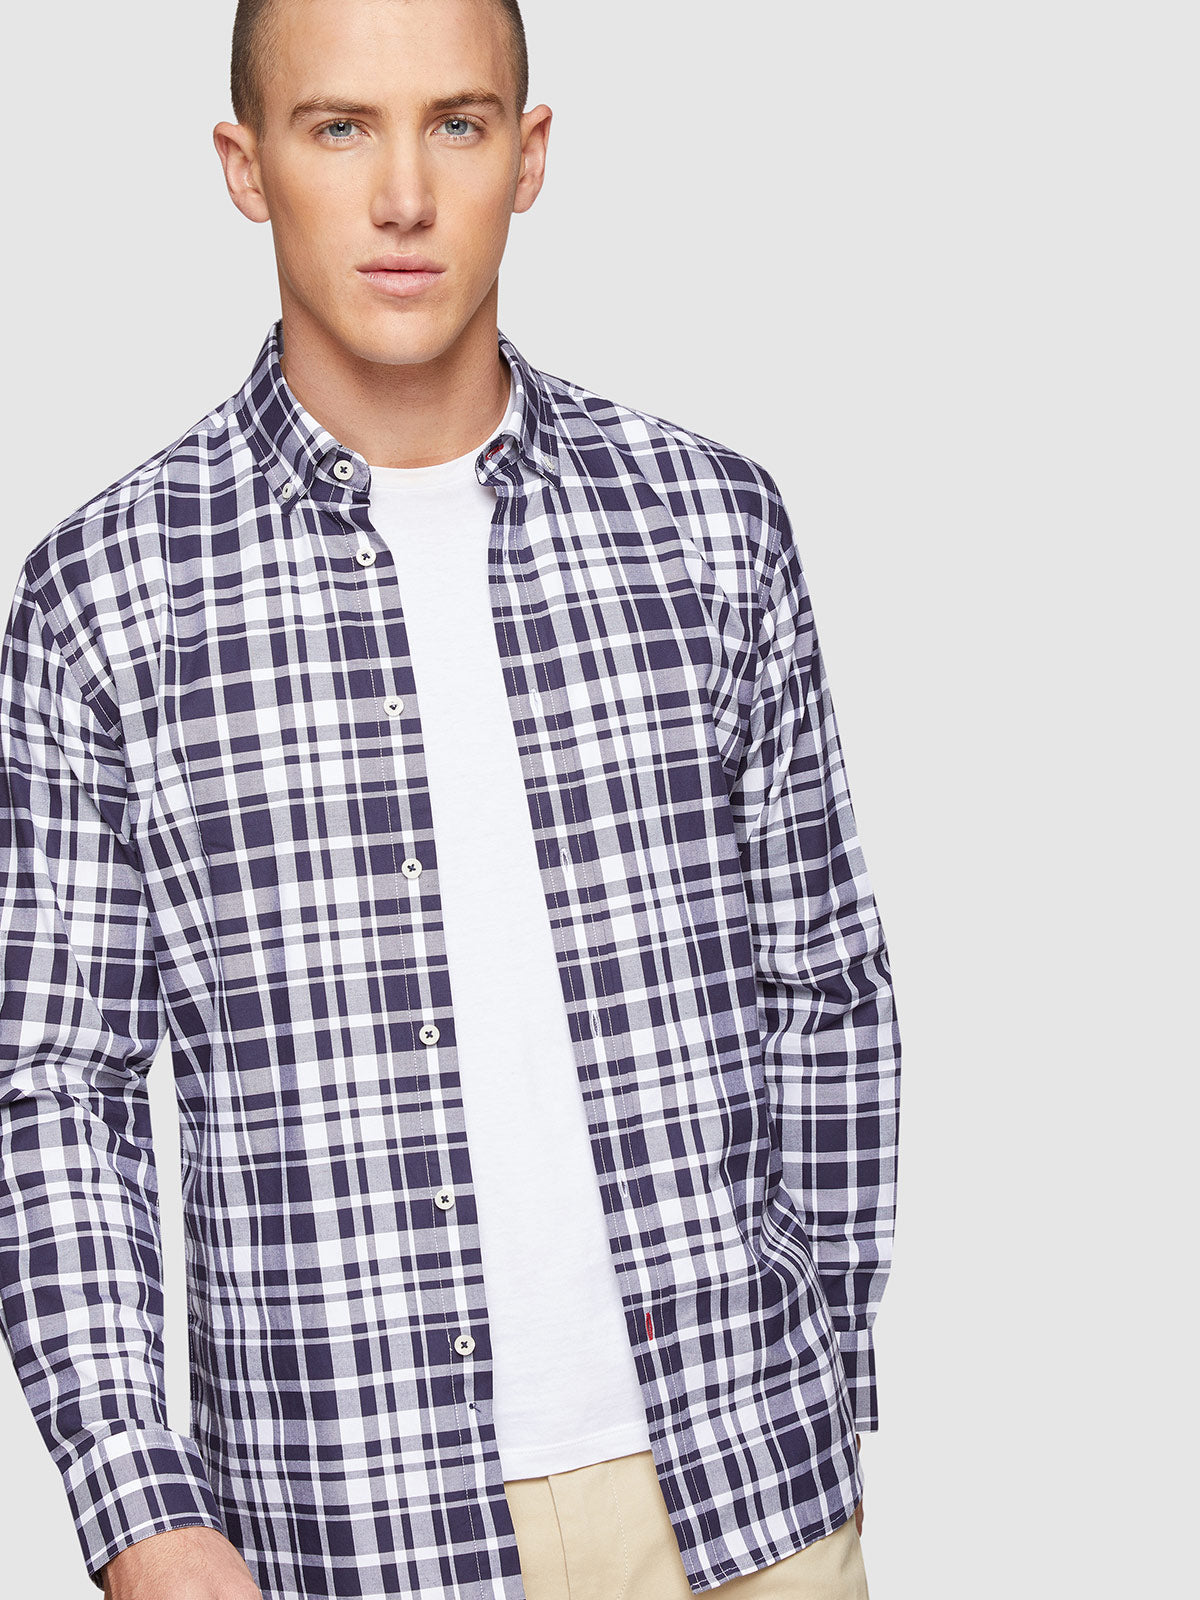 STRATTON CHECKED REGULAR FIT SHIRT NAVY